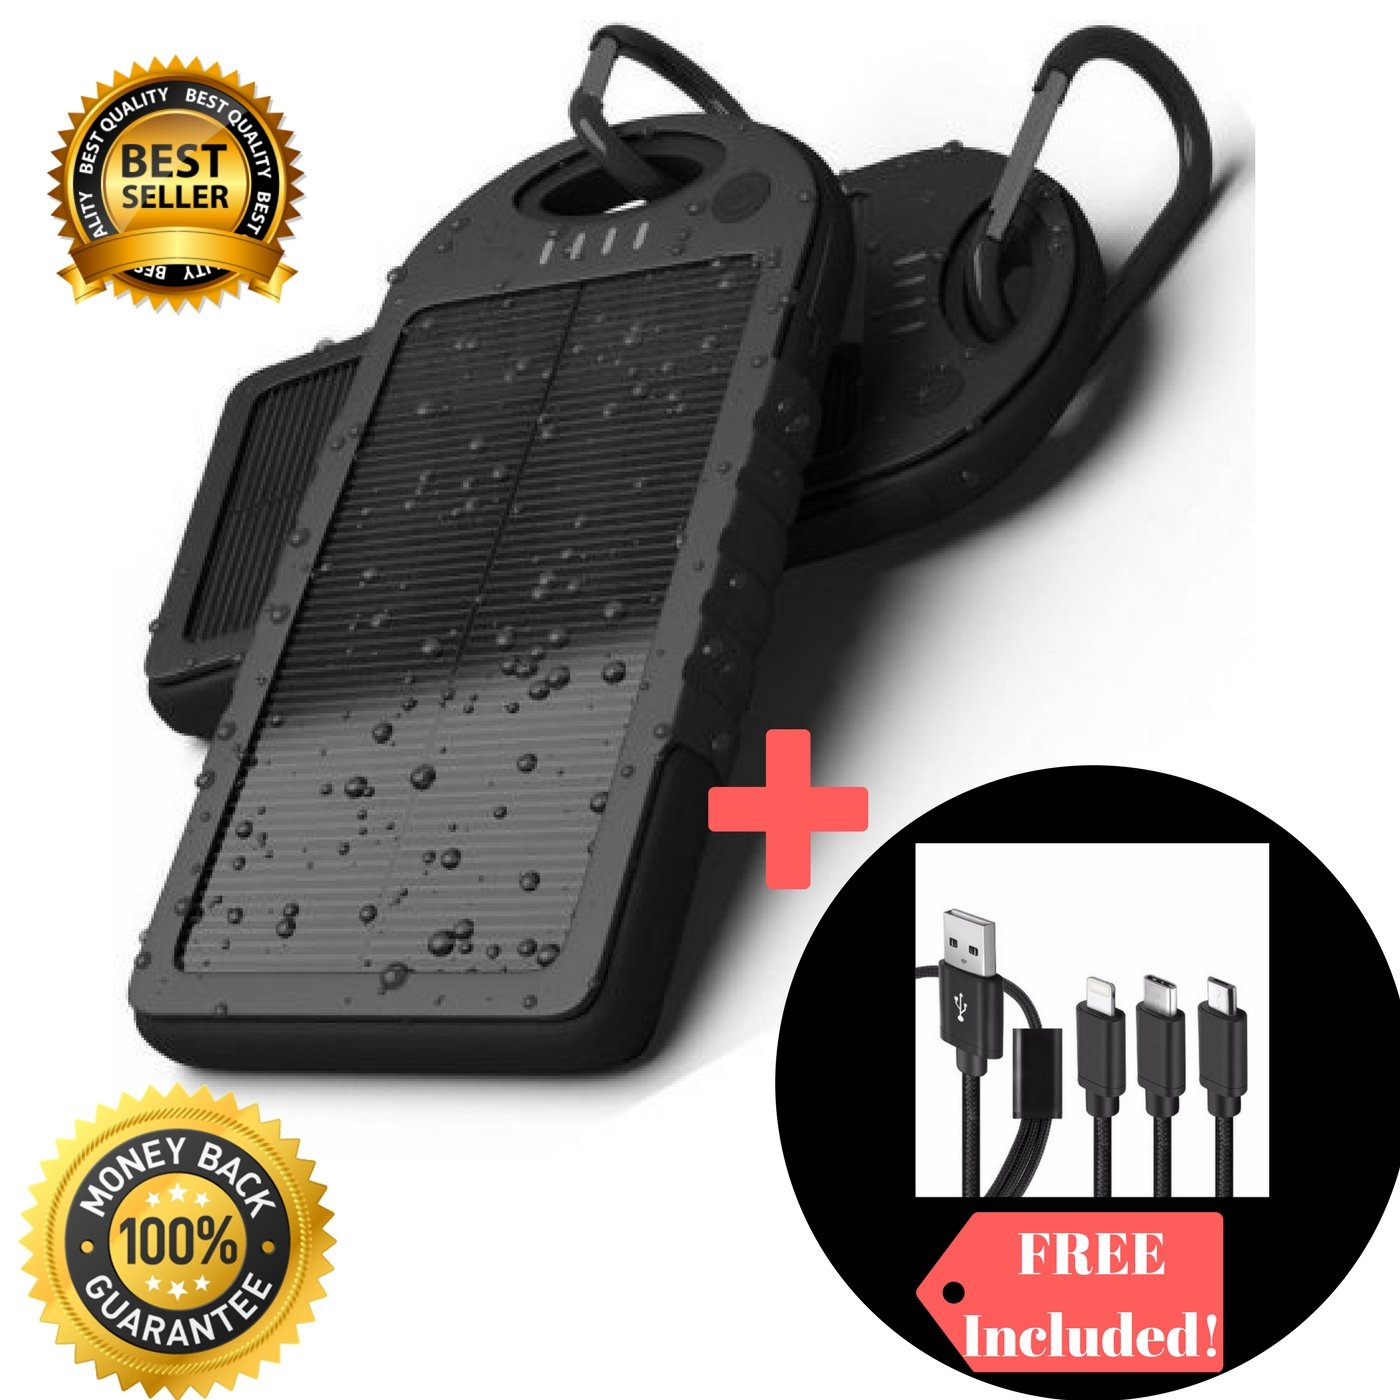 Solar Powered Charger Battery Pack For Phone Tablet 5000Mah and 3 in 1 USB Charging cable, shock proof, waterproof